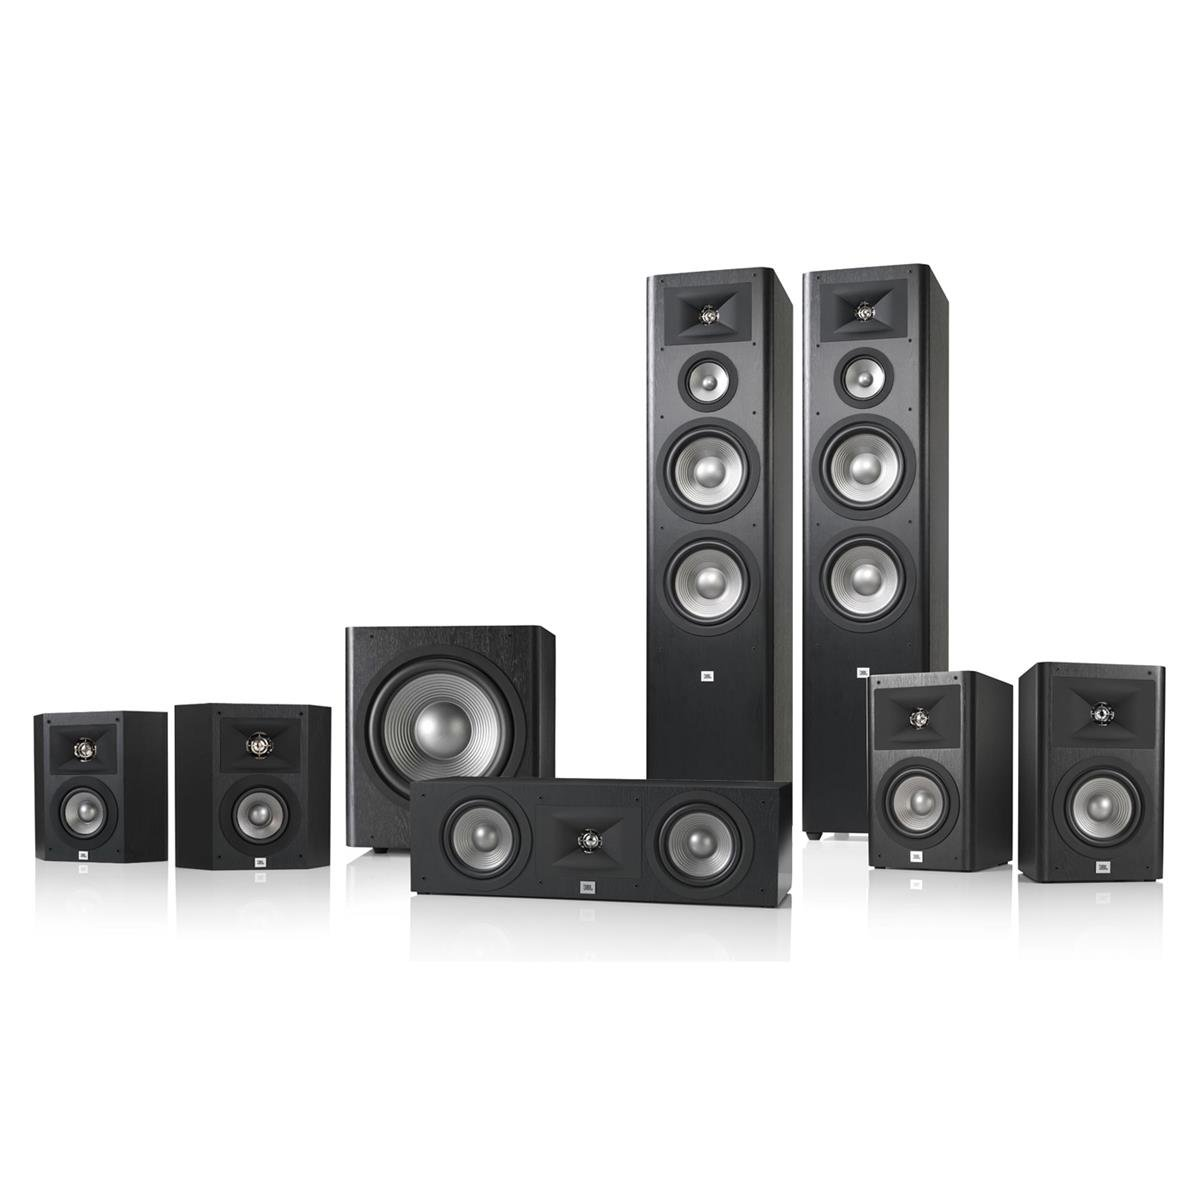 JBL Studio 290 7.1 Home Theater Speaker System Package (Black) by JBL